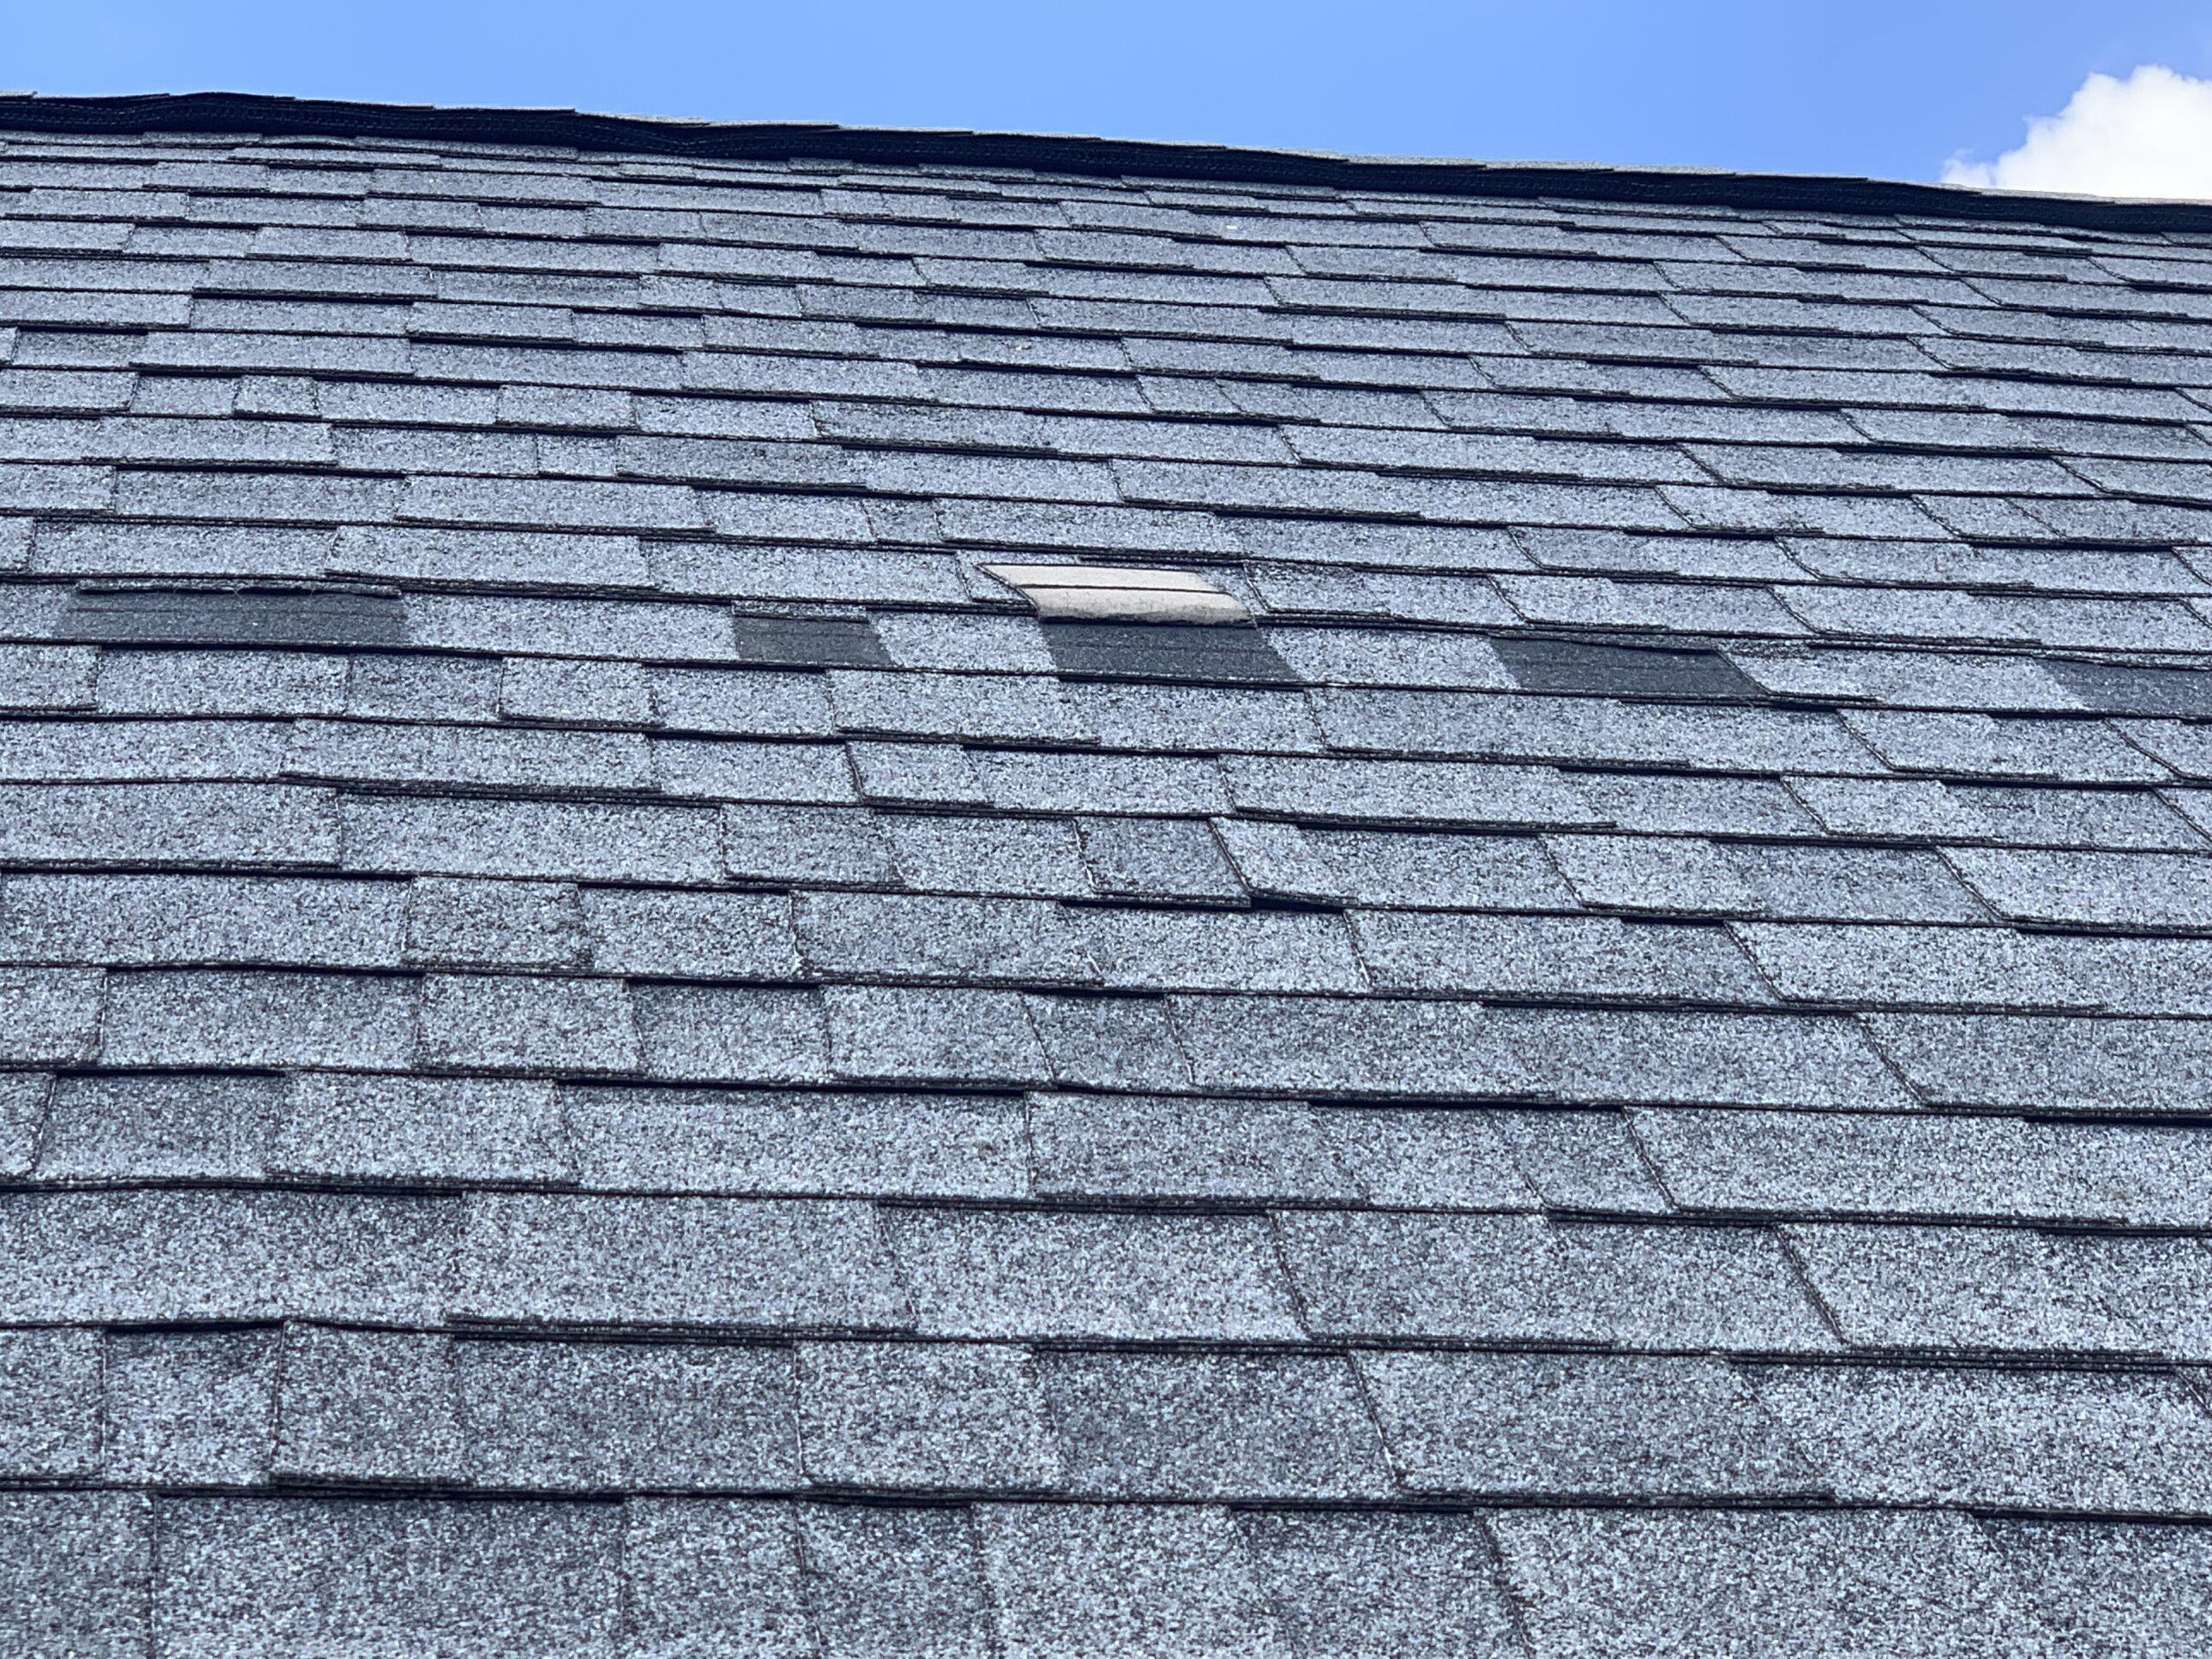 this is a picture of old gray dimensional shingles with missing tabs and missing shingles